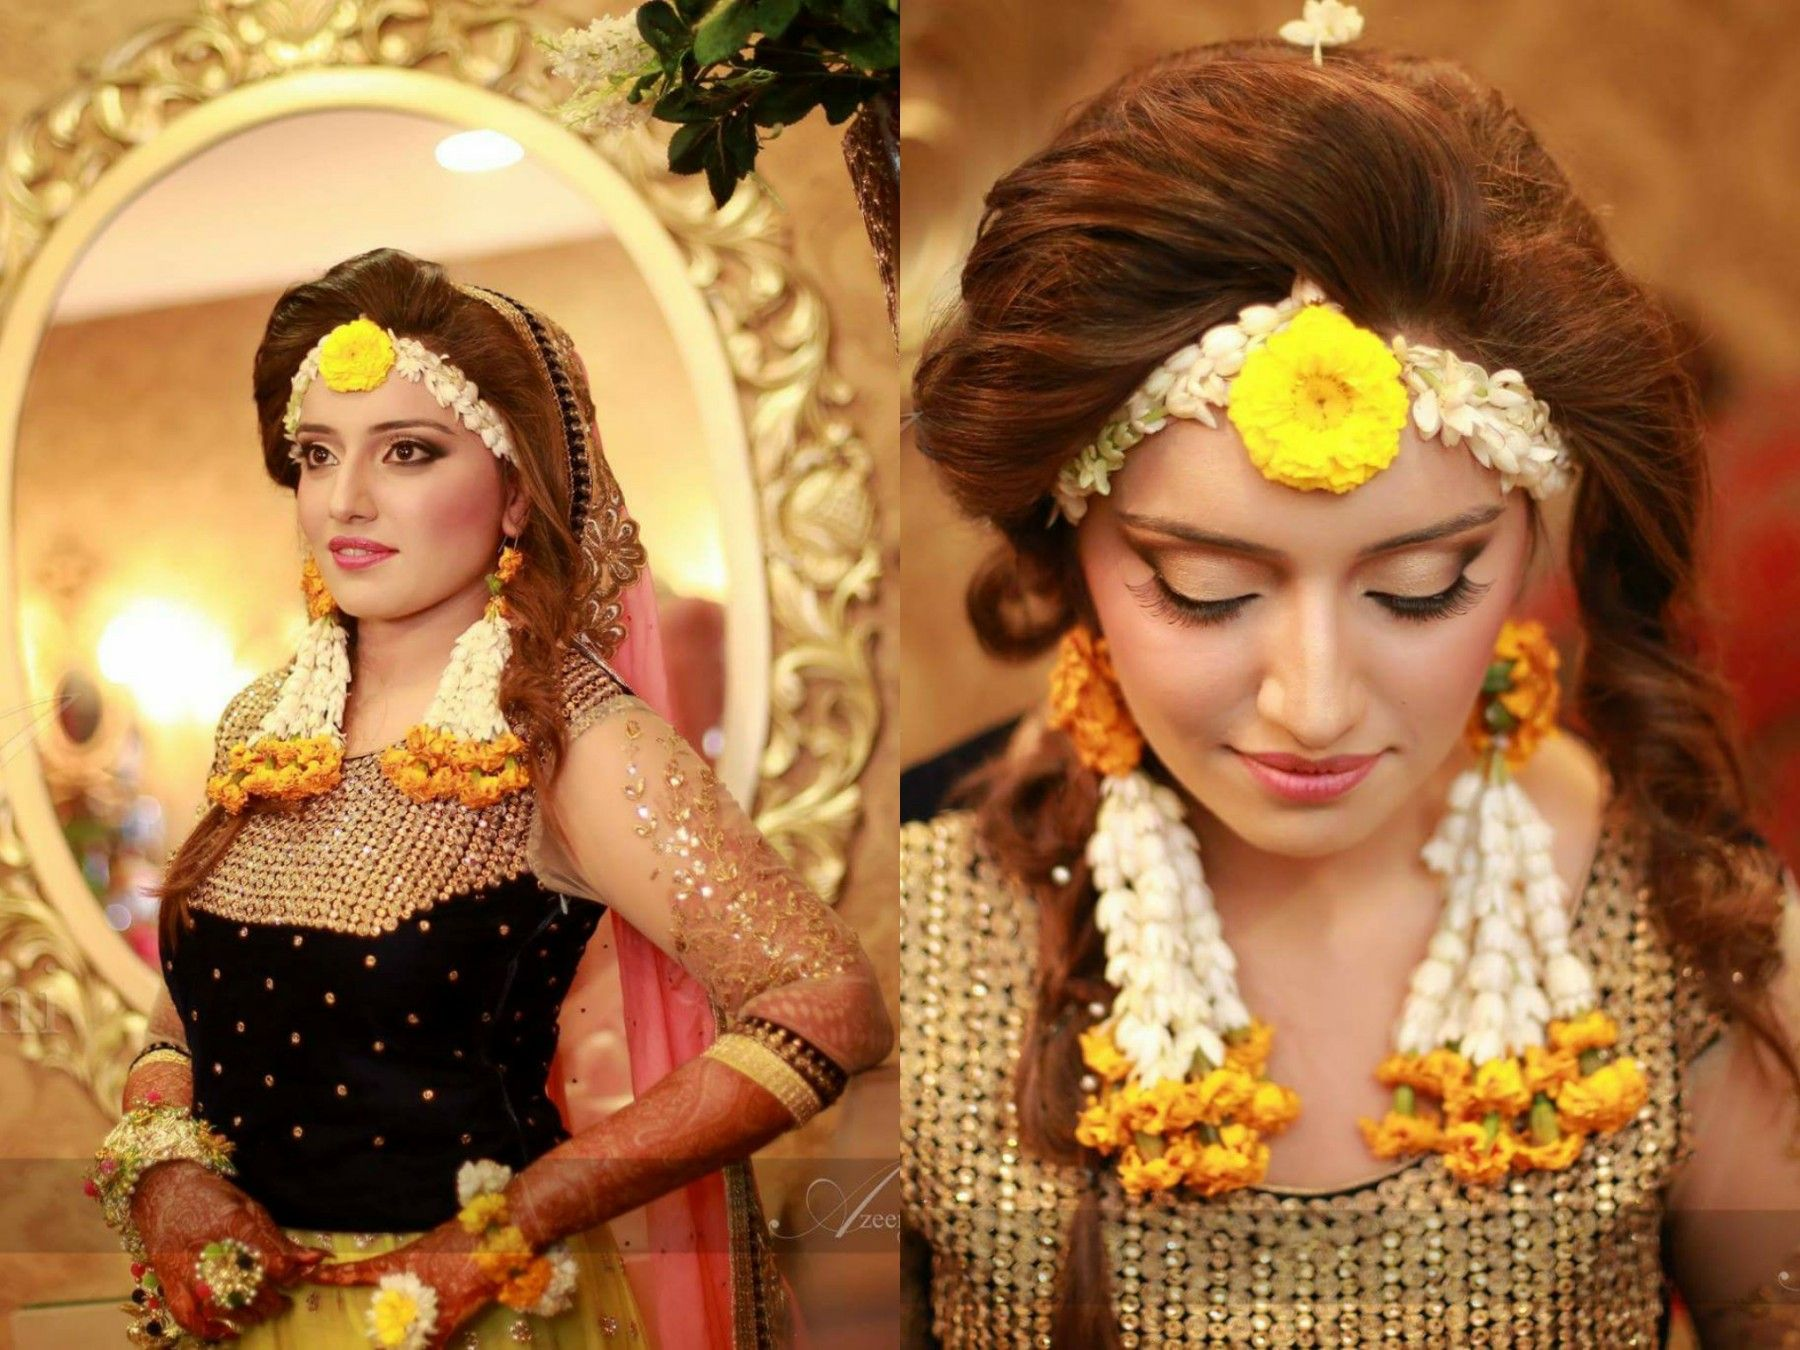 Mehndi Makeup And Hairstyle : Mehndi bride photography by azeemi studio wedding of